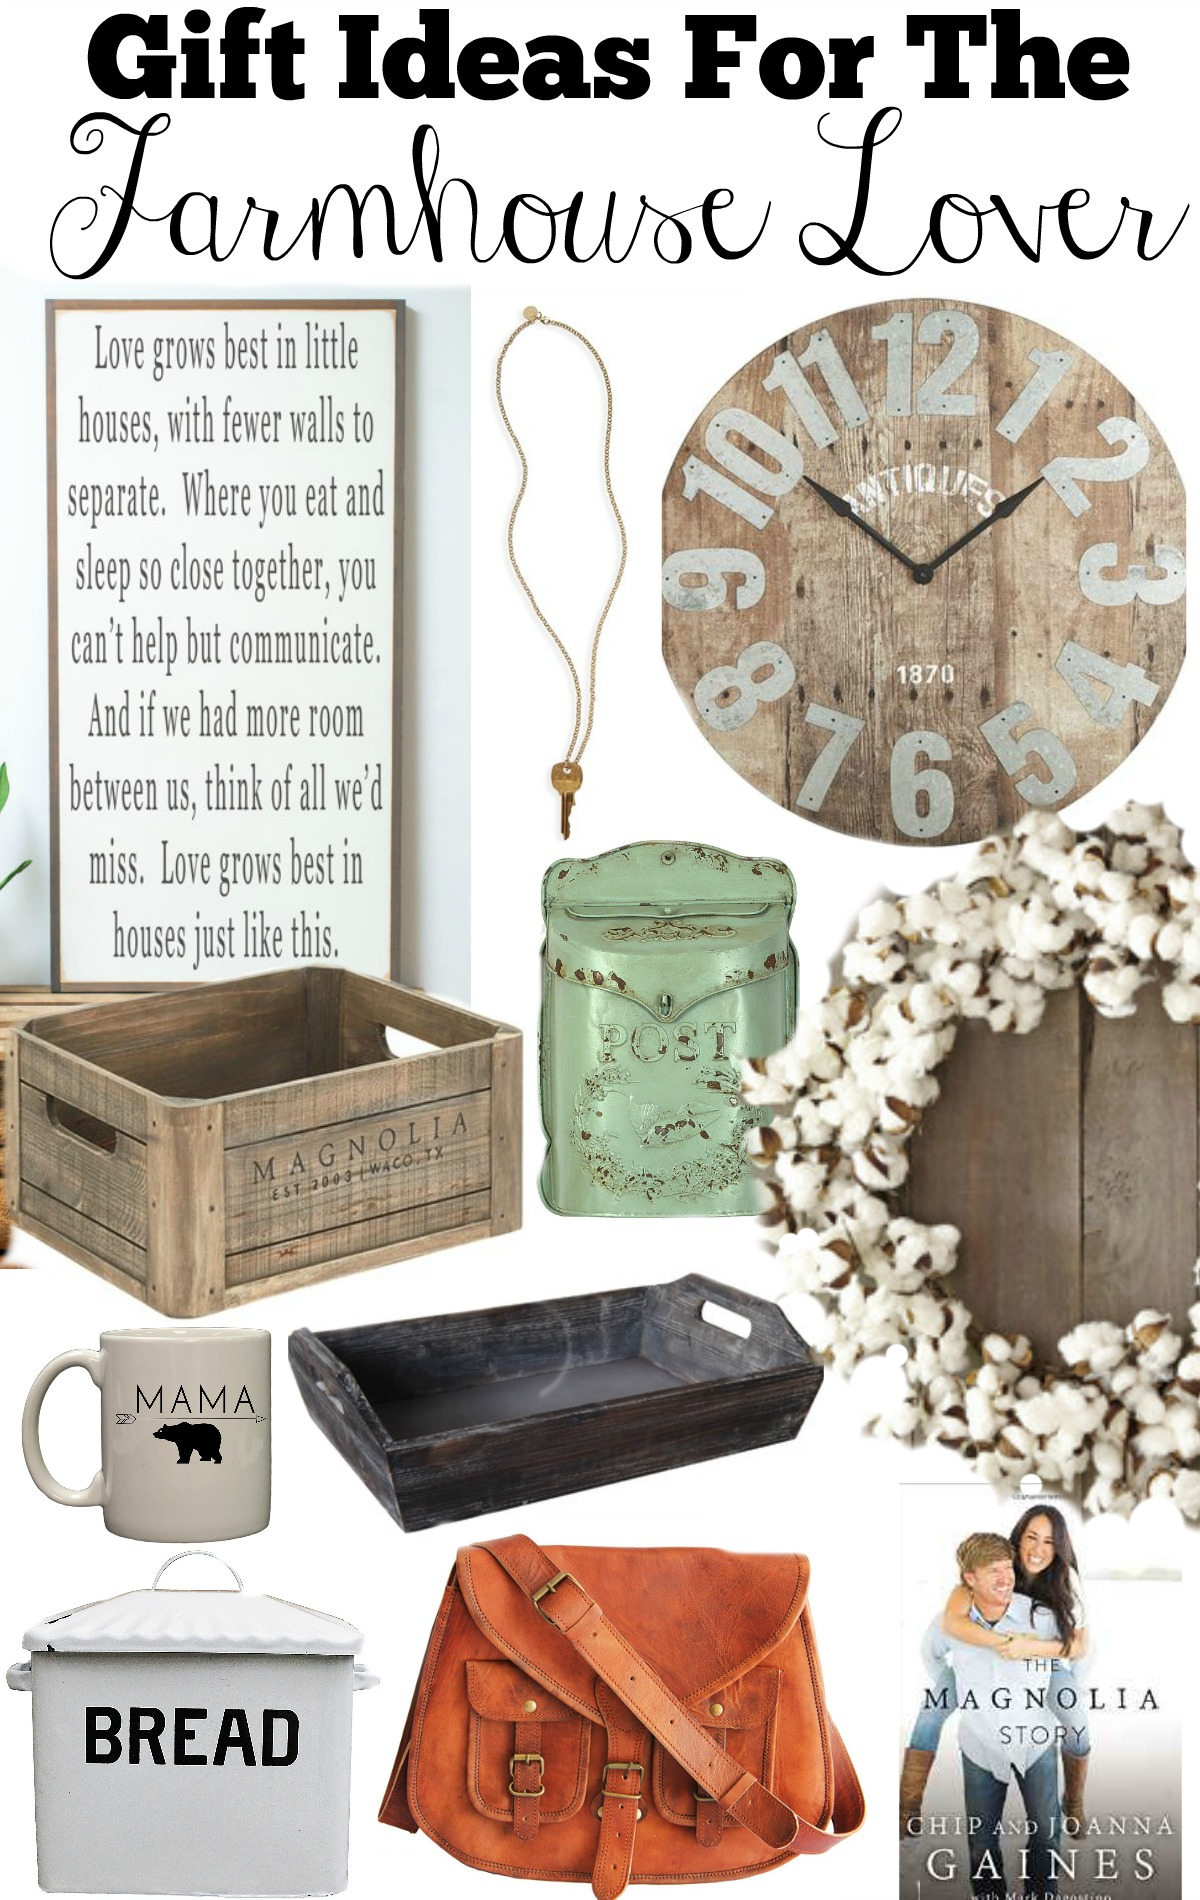 Gift Ideas For The Farmhouse Lover